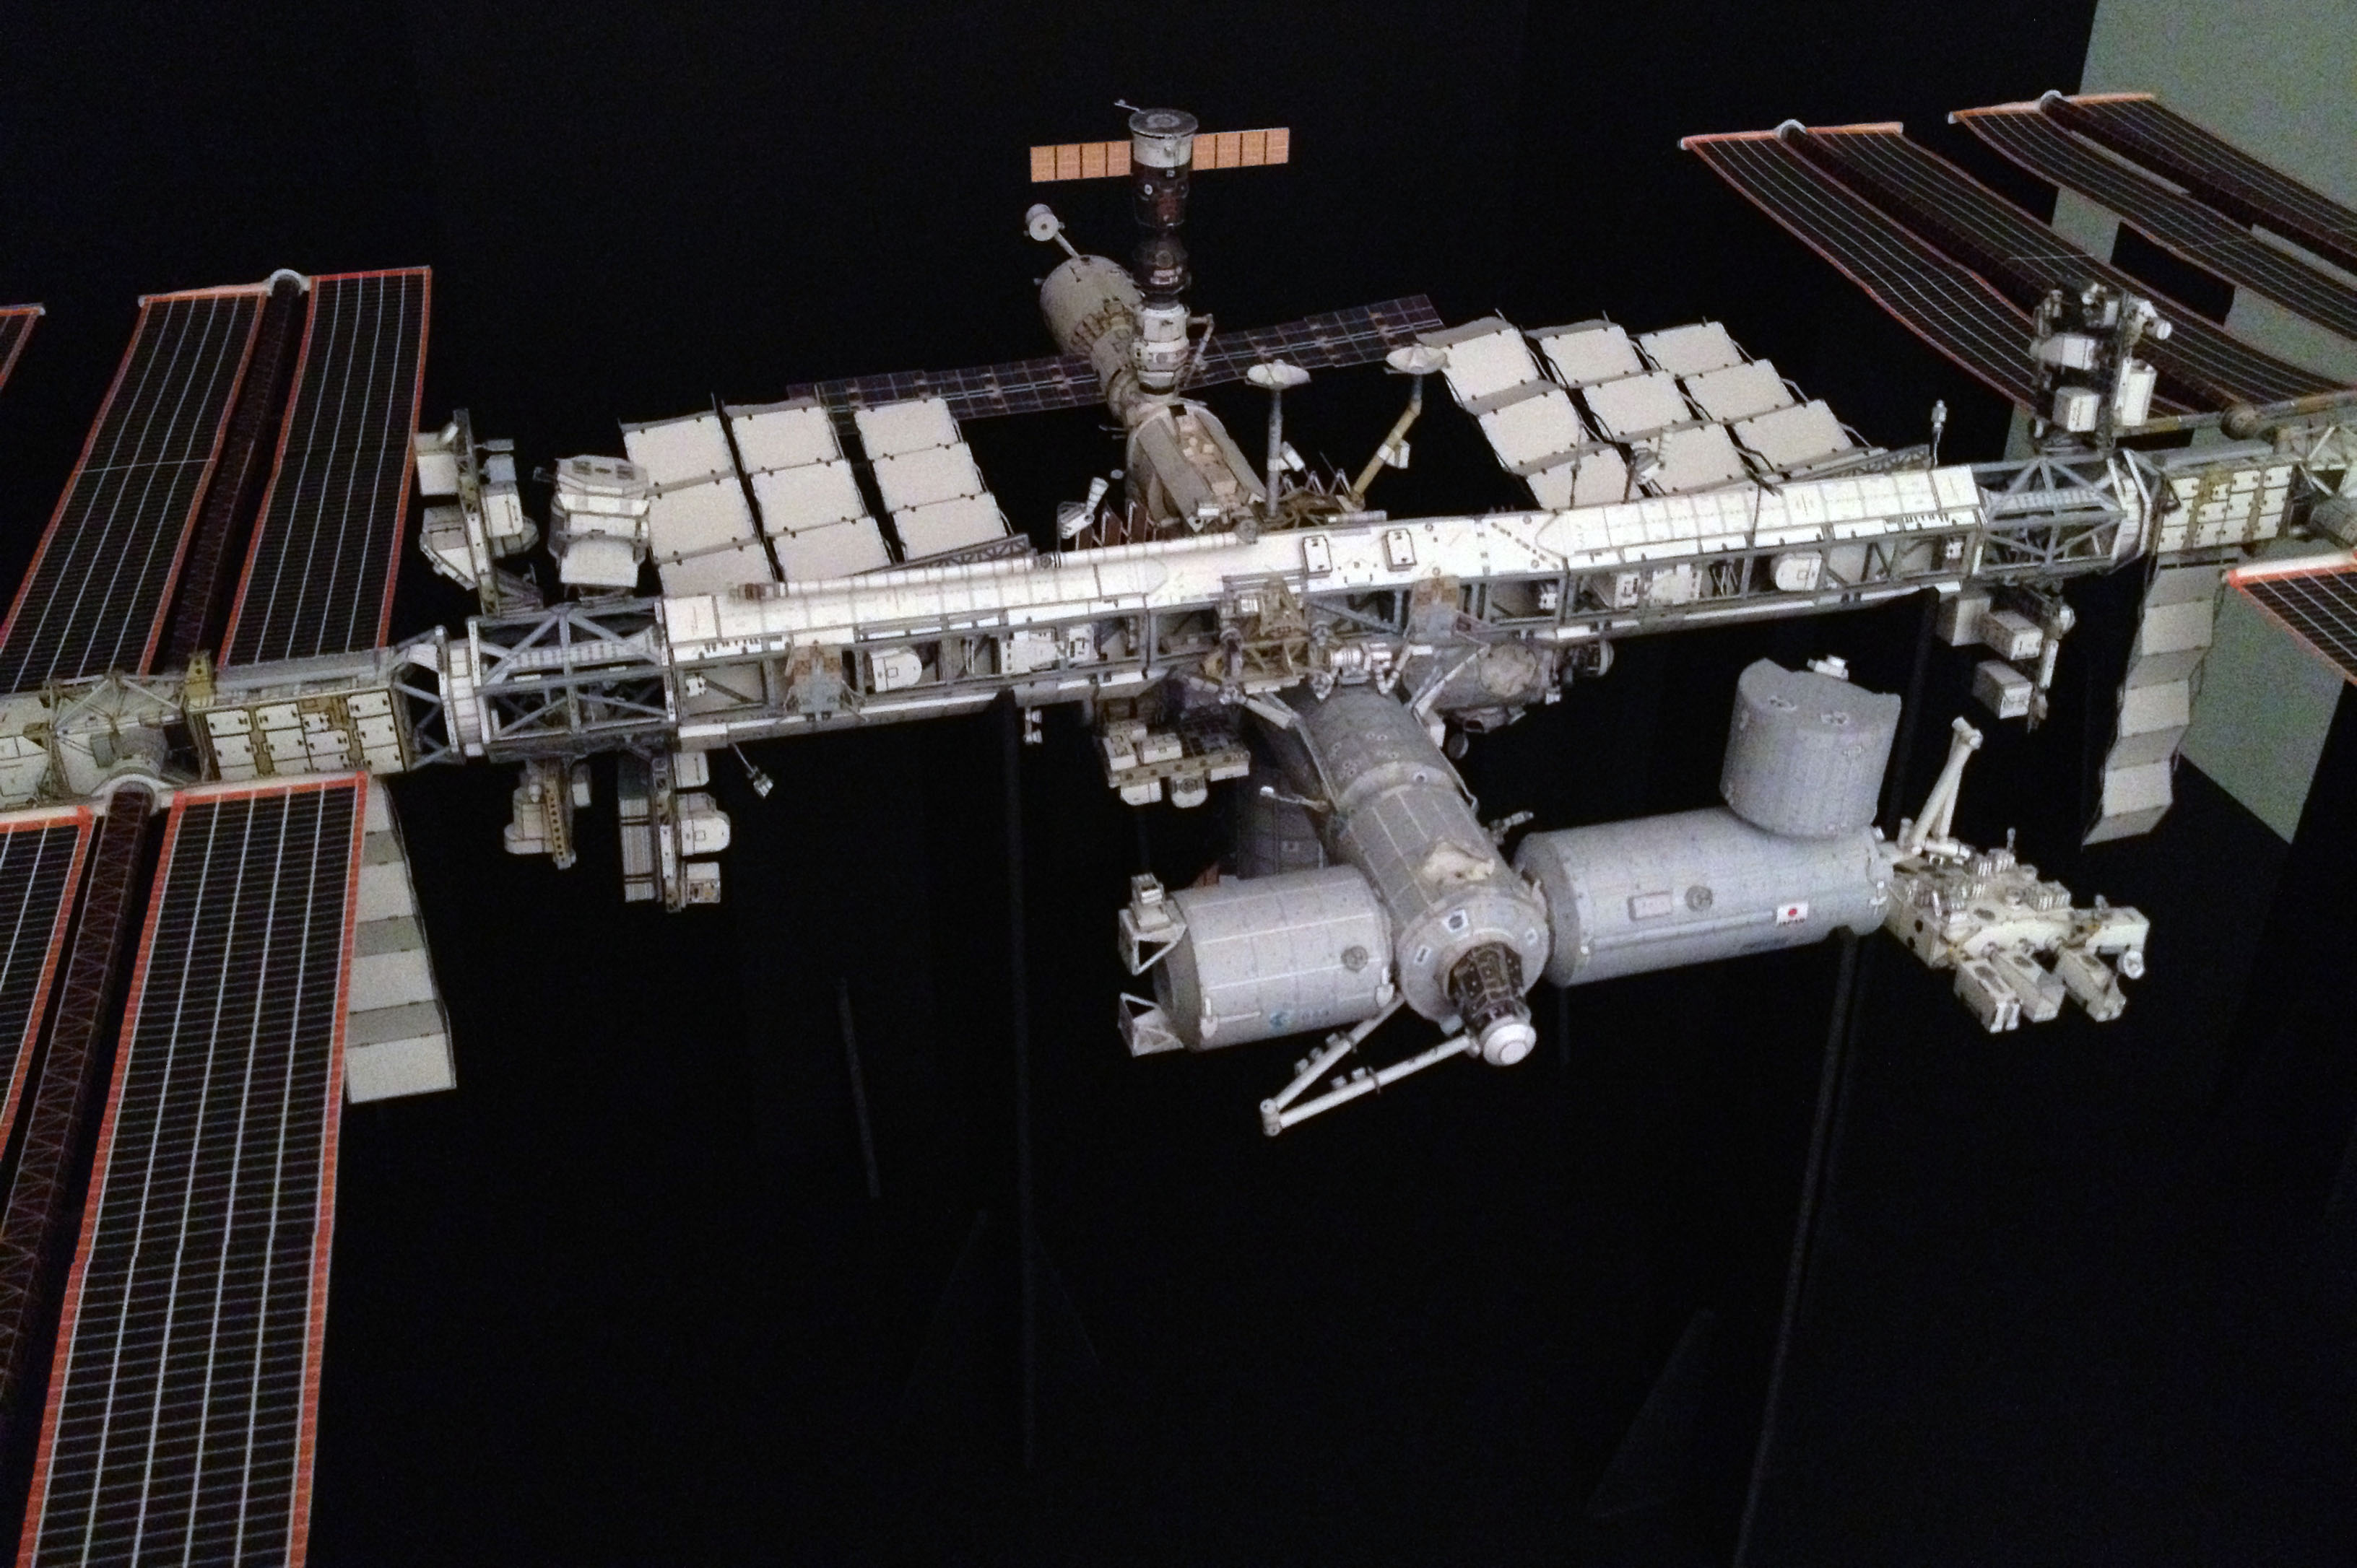 602 Words Essay on The International Space Station (ISS)